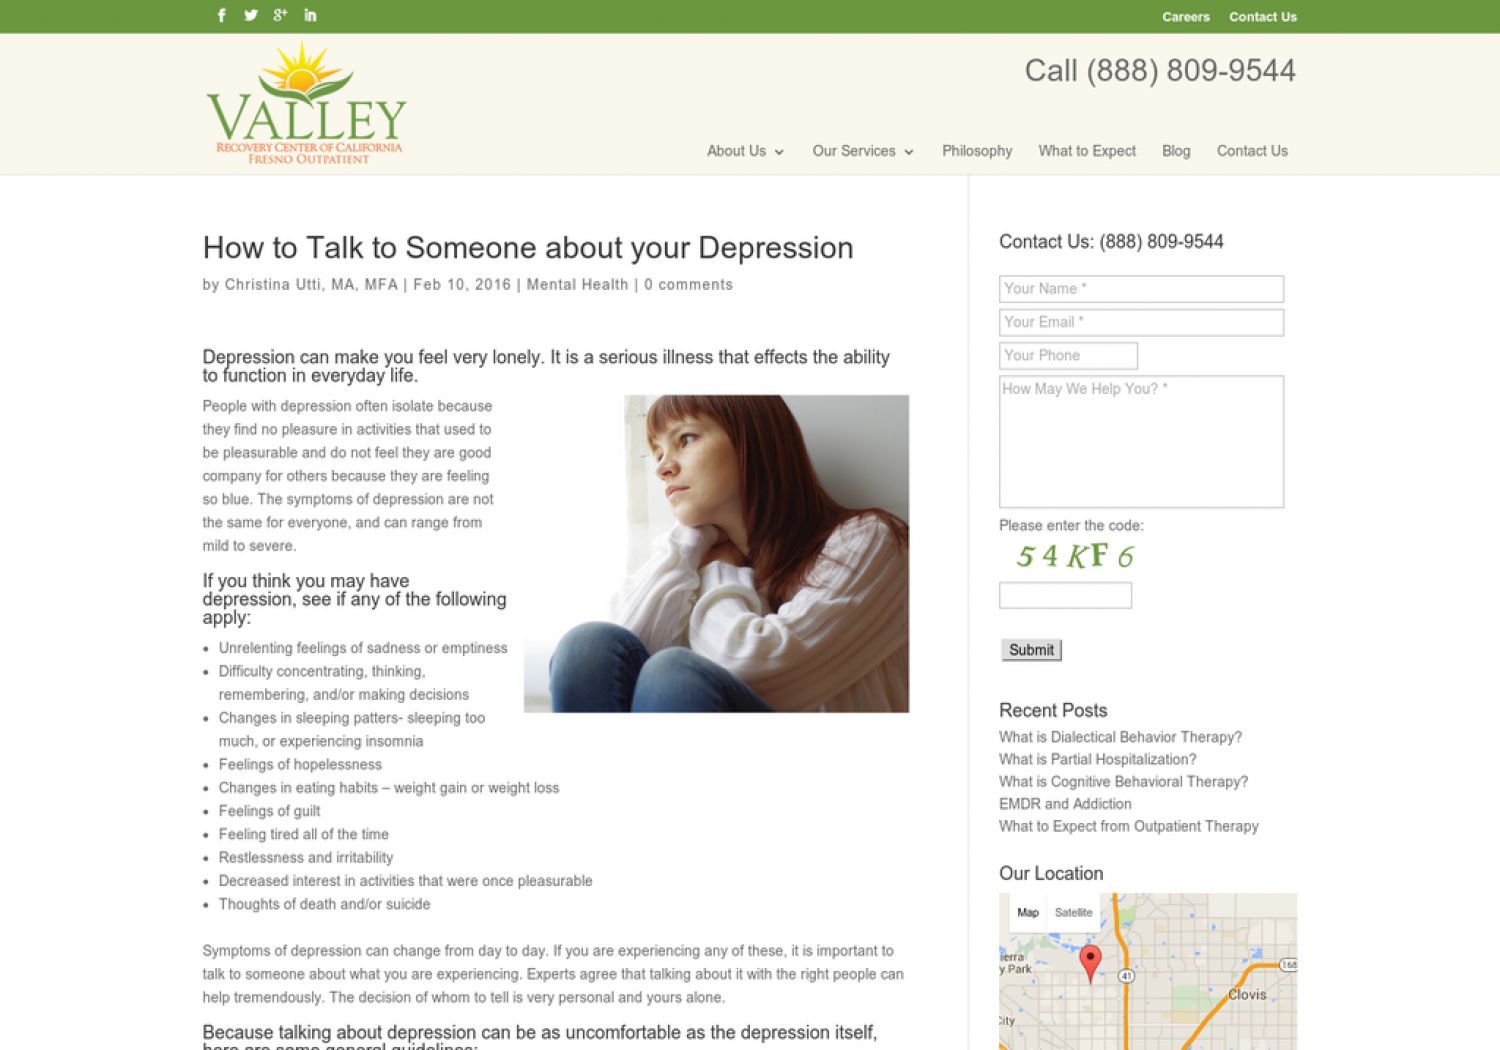 How to Talk to Someone about your Depression Infographic